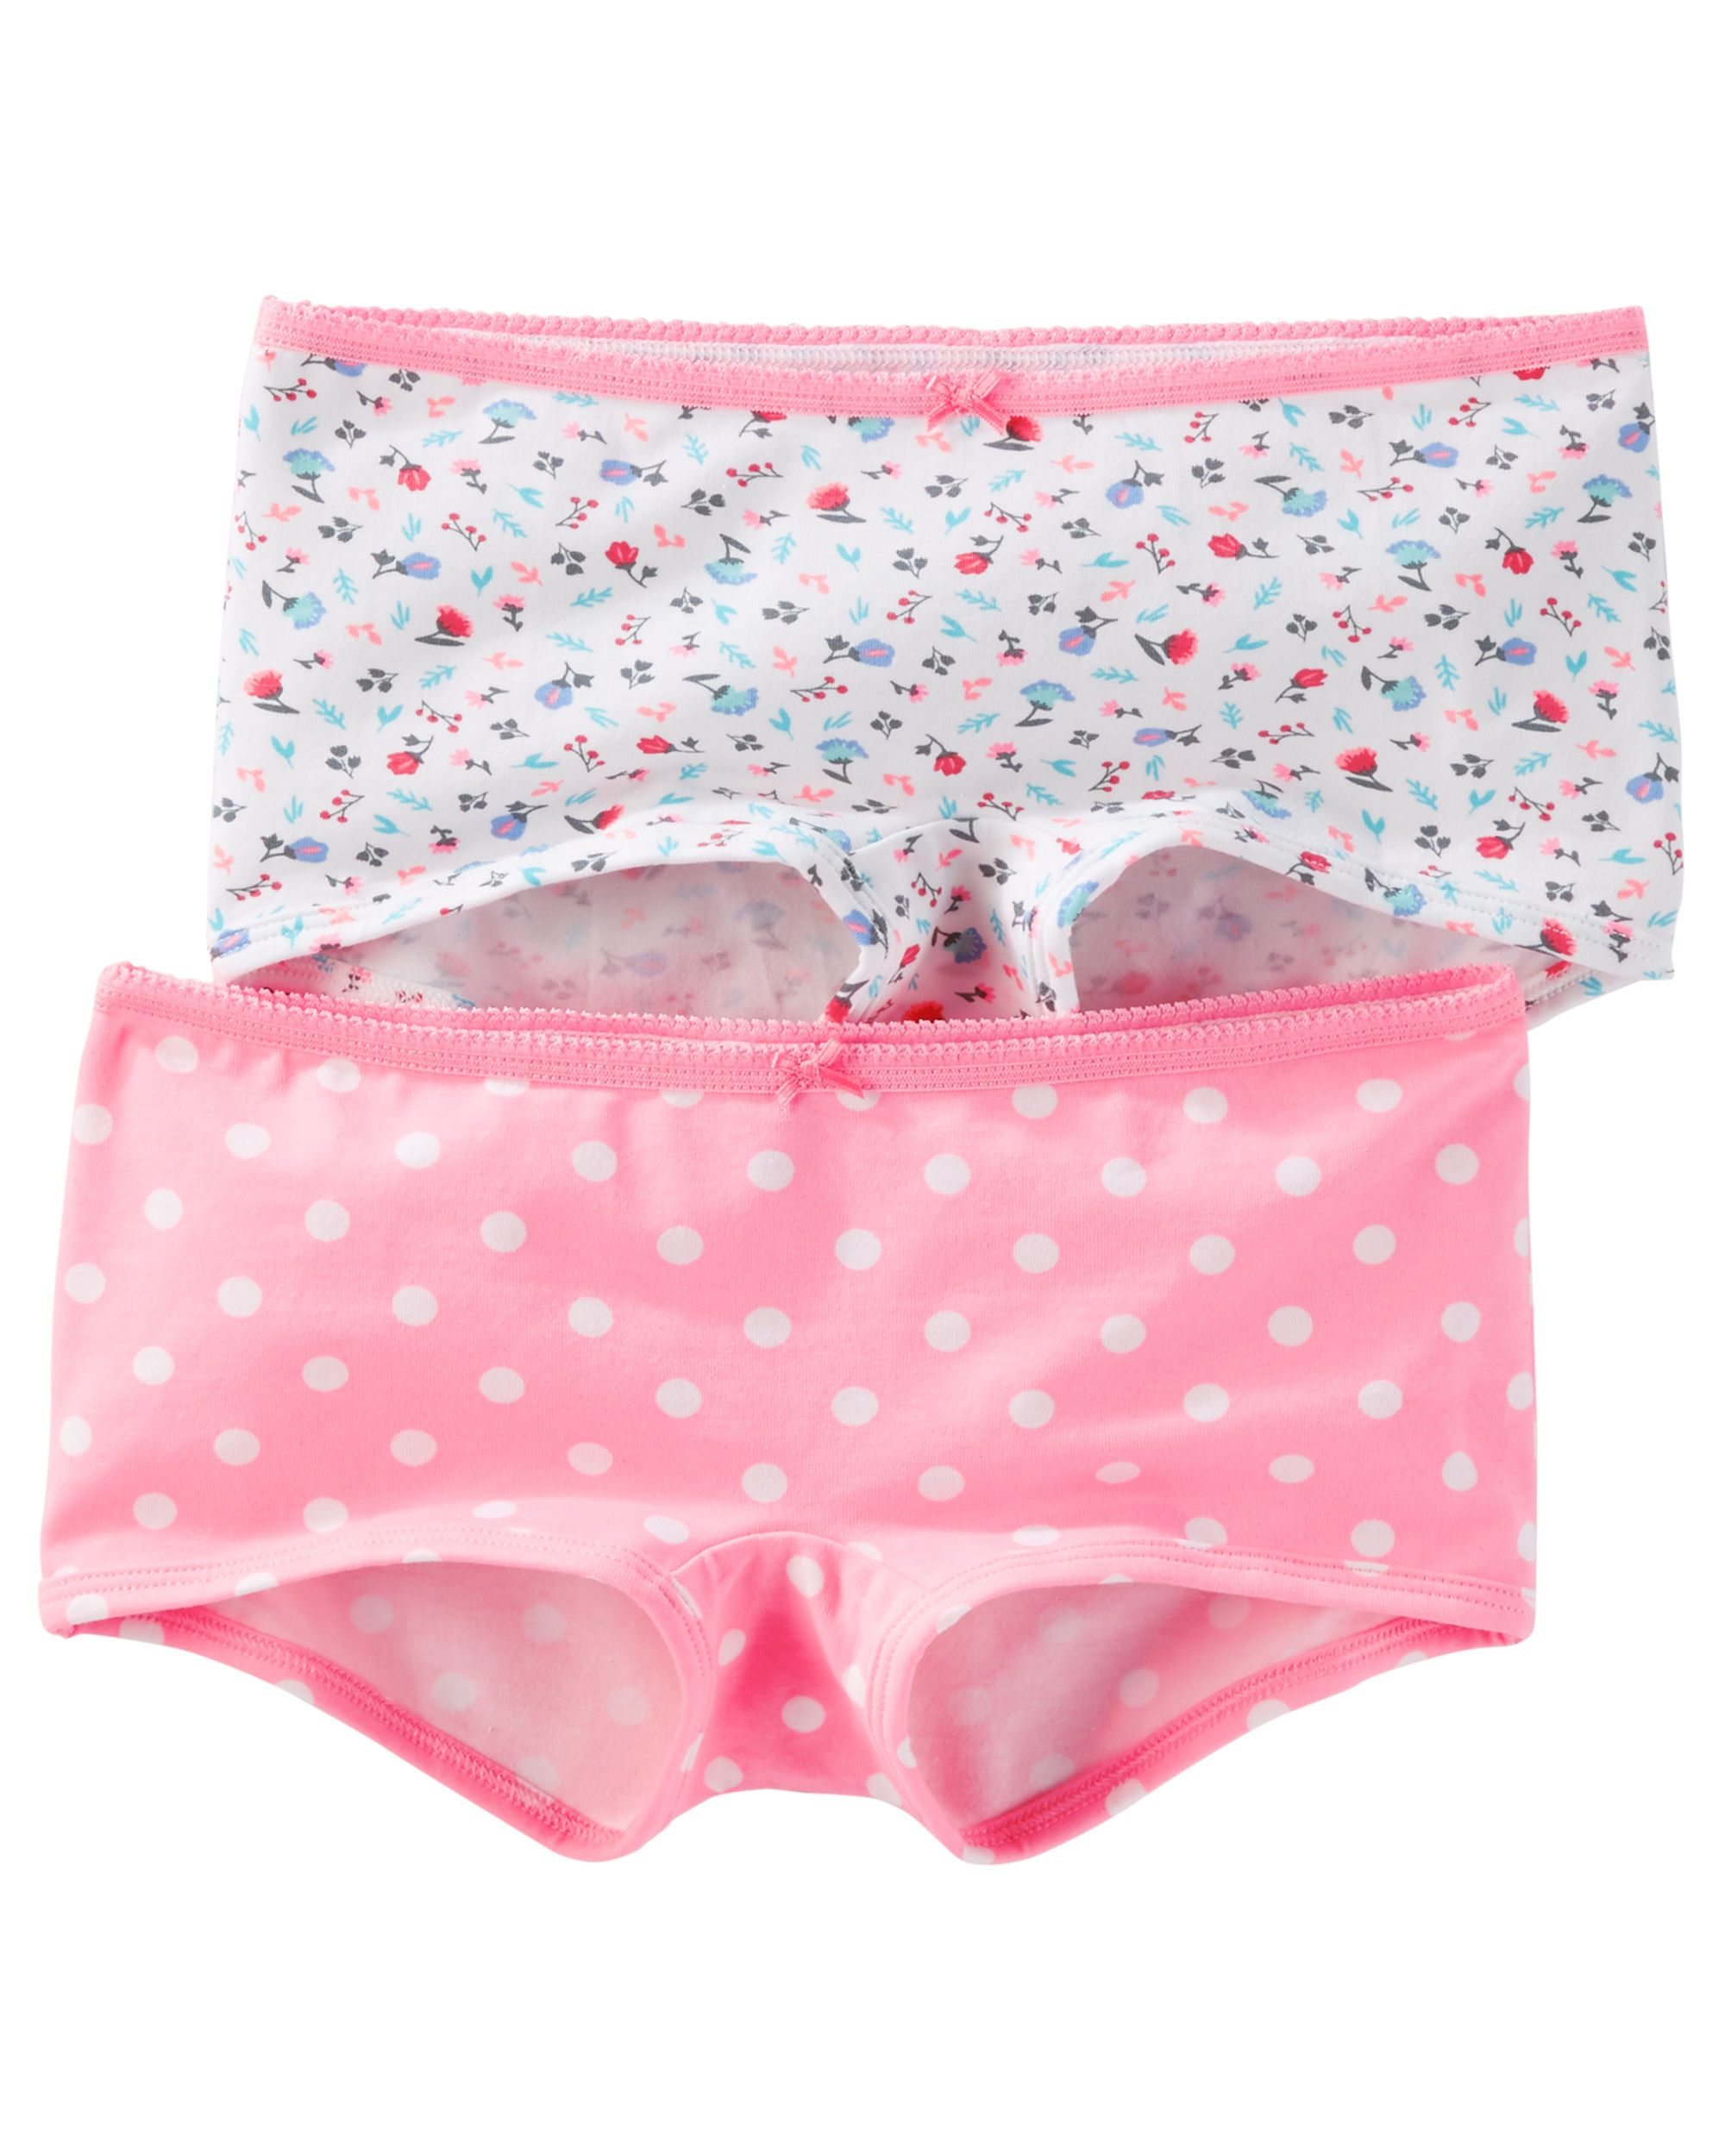 ae8530db24 Toddler Girl 2-Pack Stretch Cotton Boyshort Panties